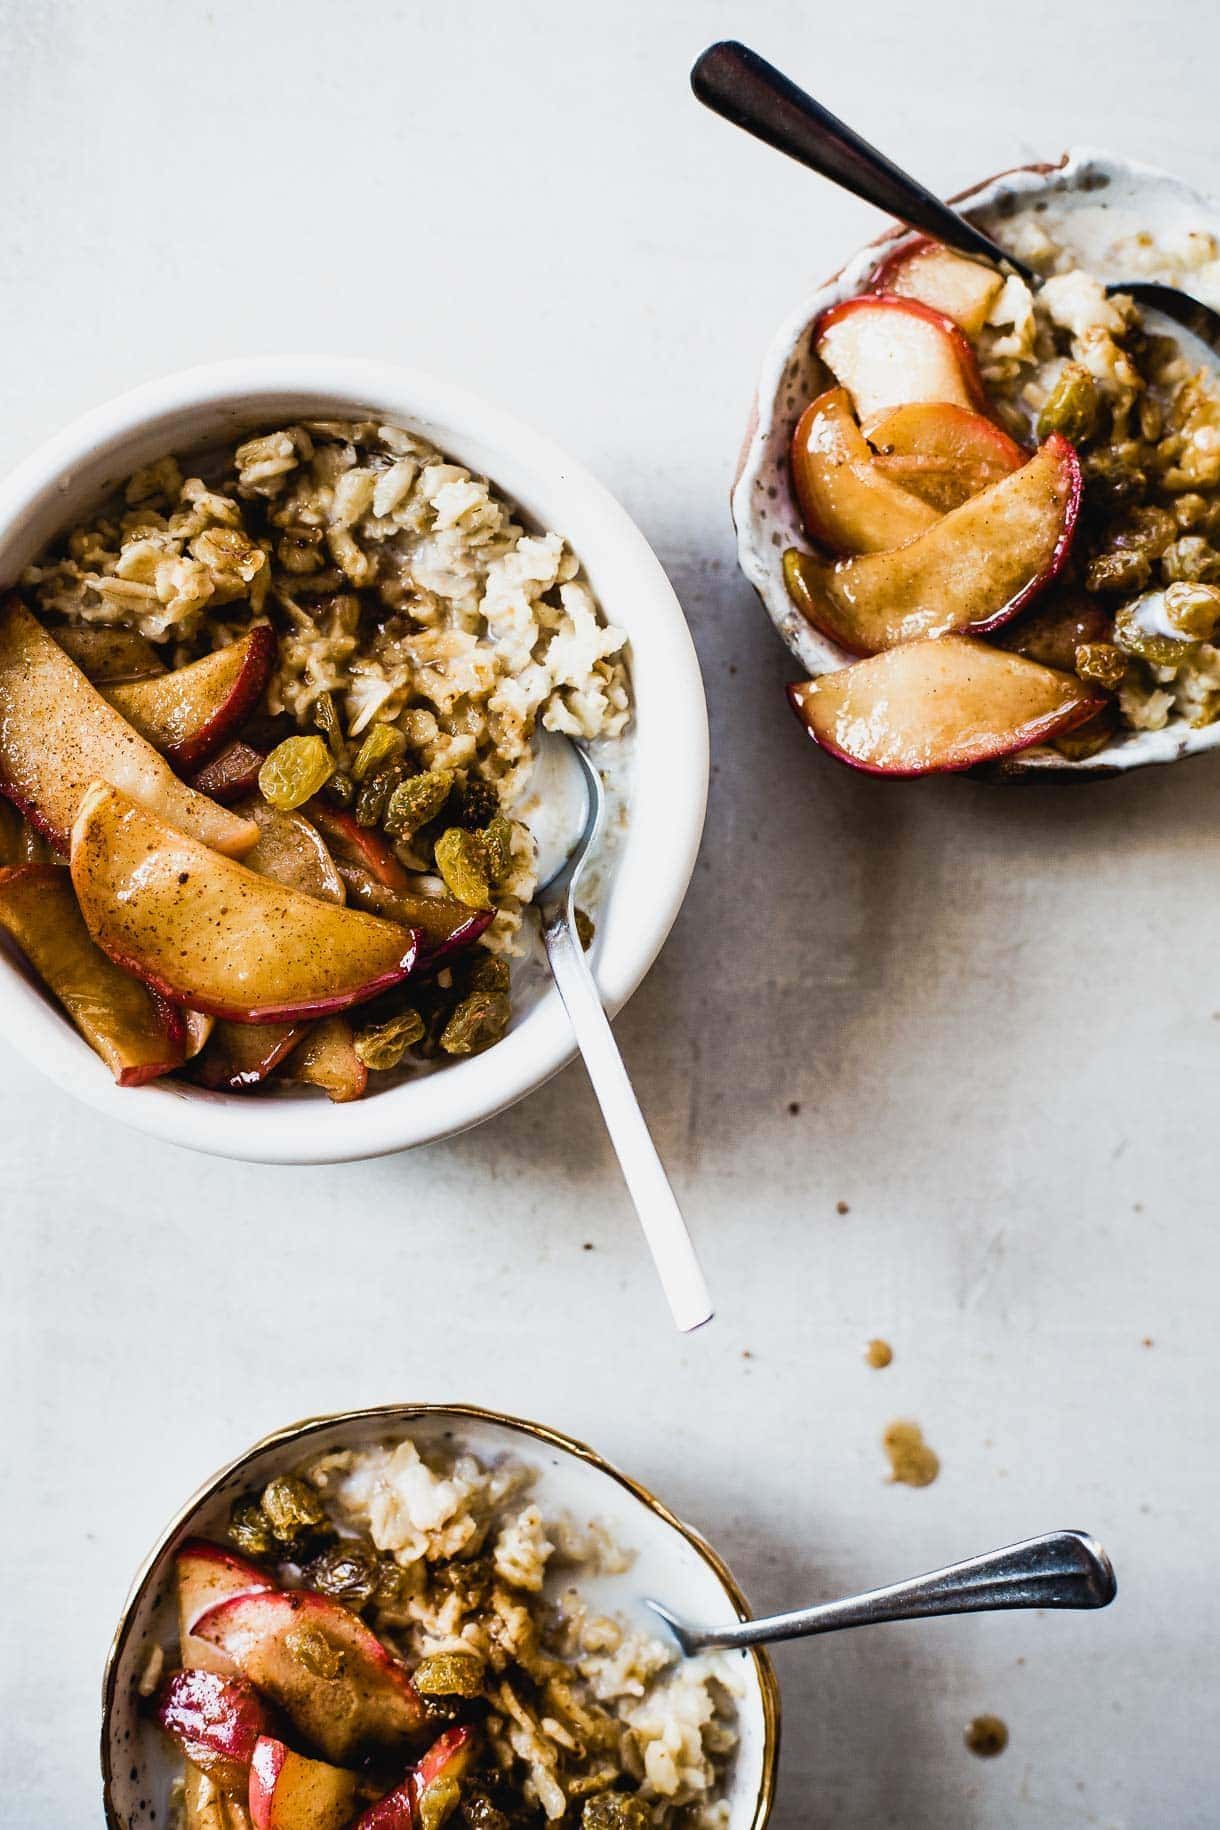 Coconut Sugar Oatmeal with Caramelized Apples